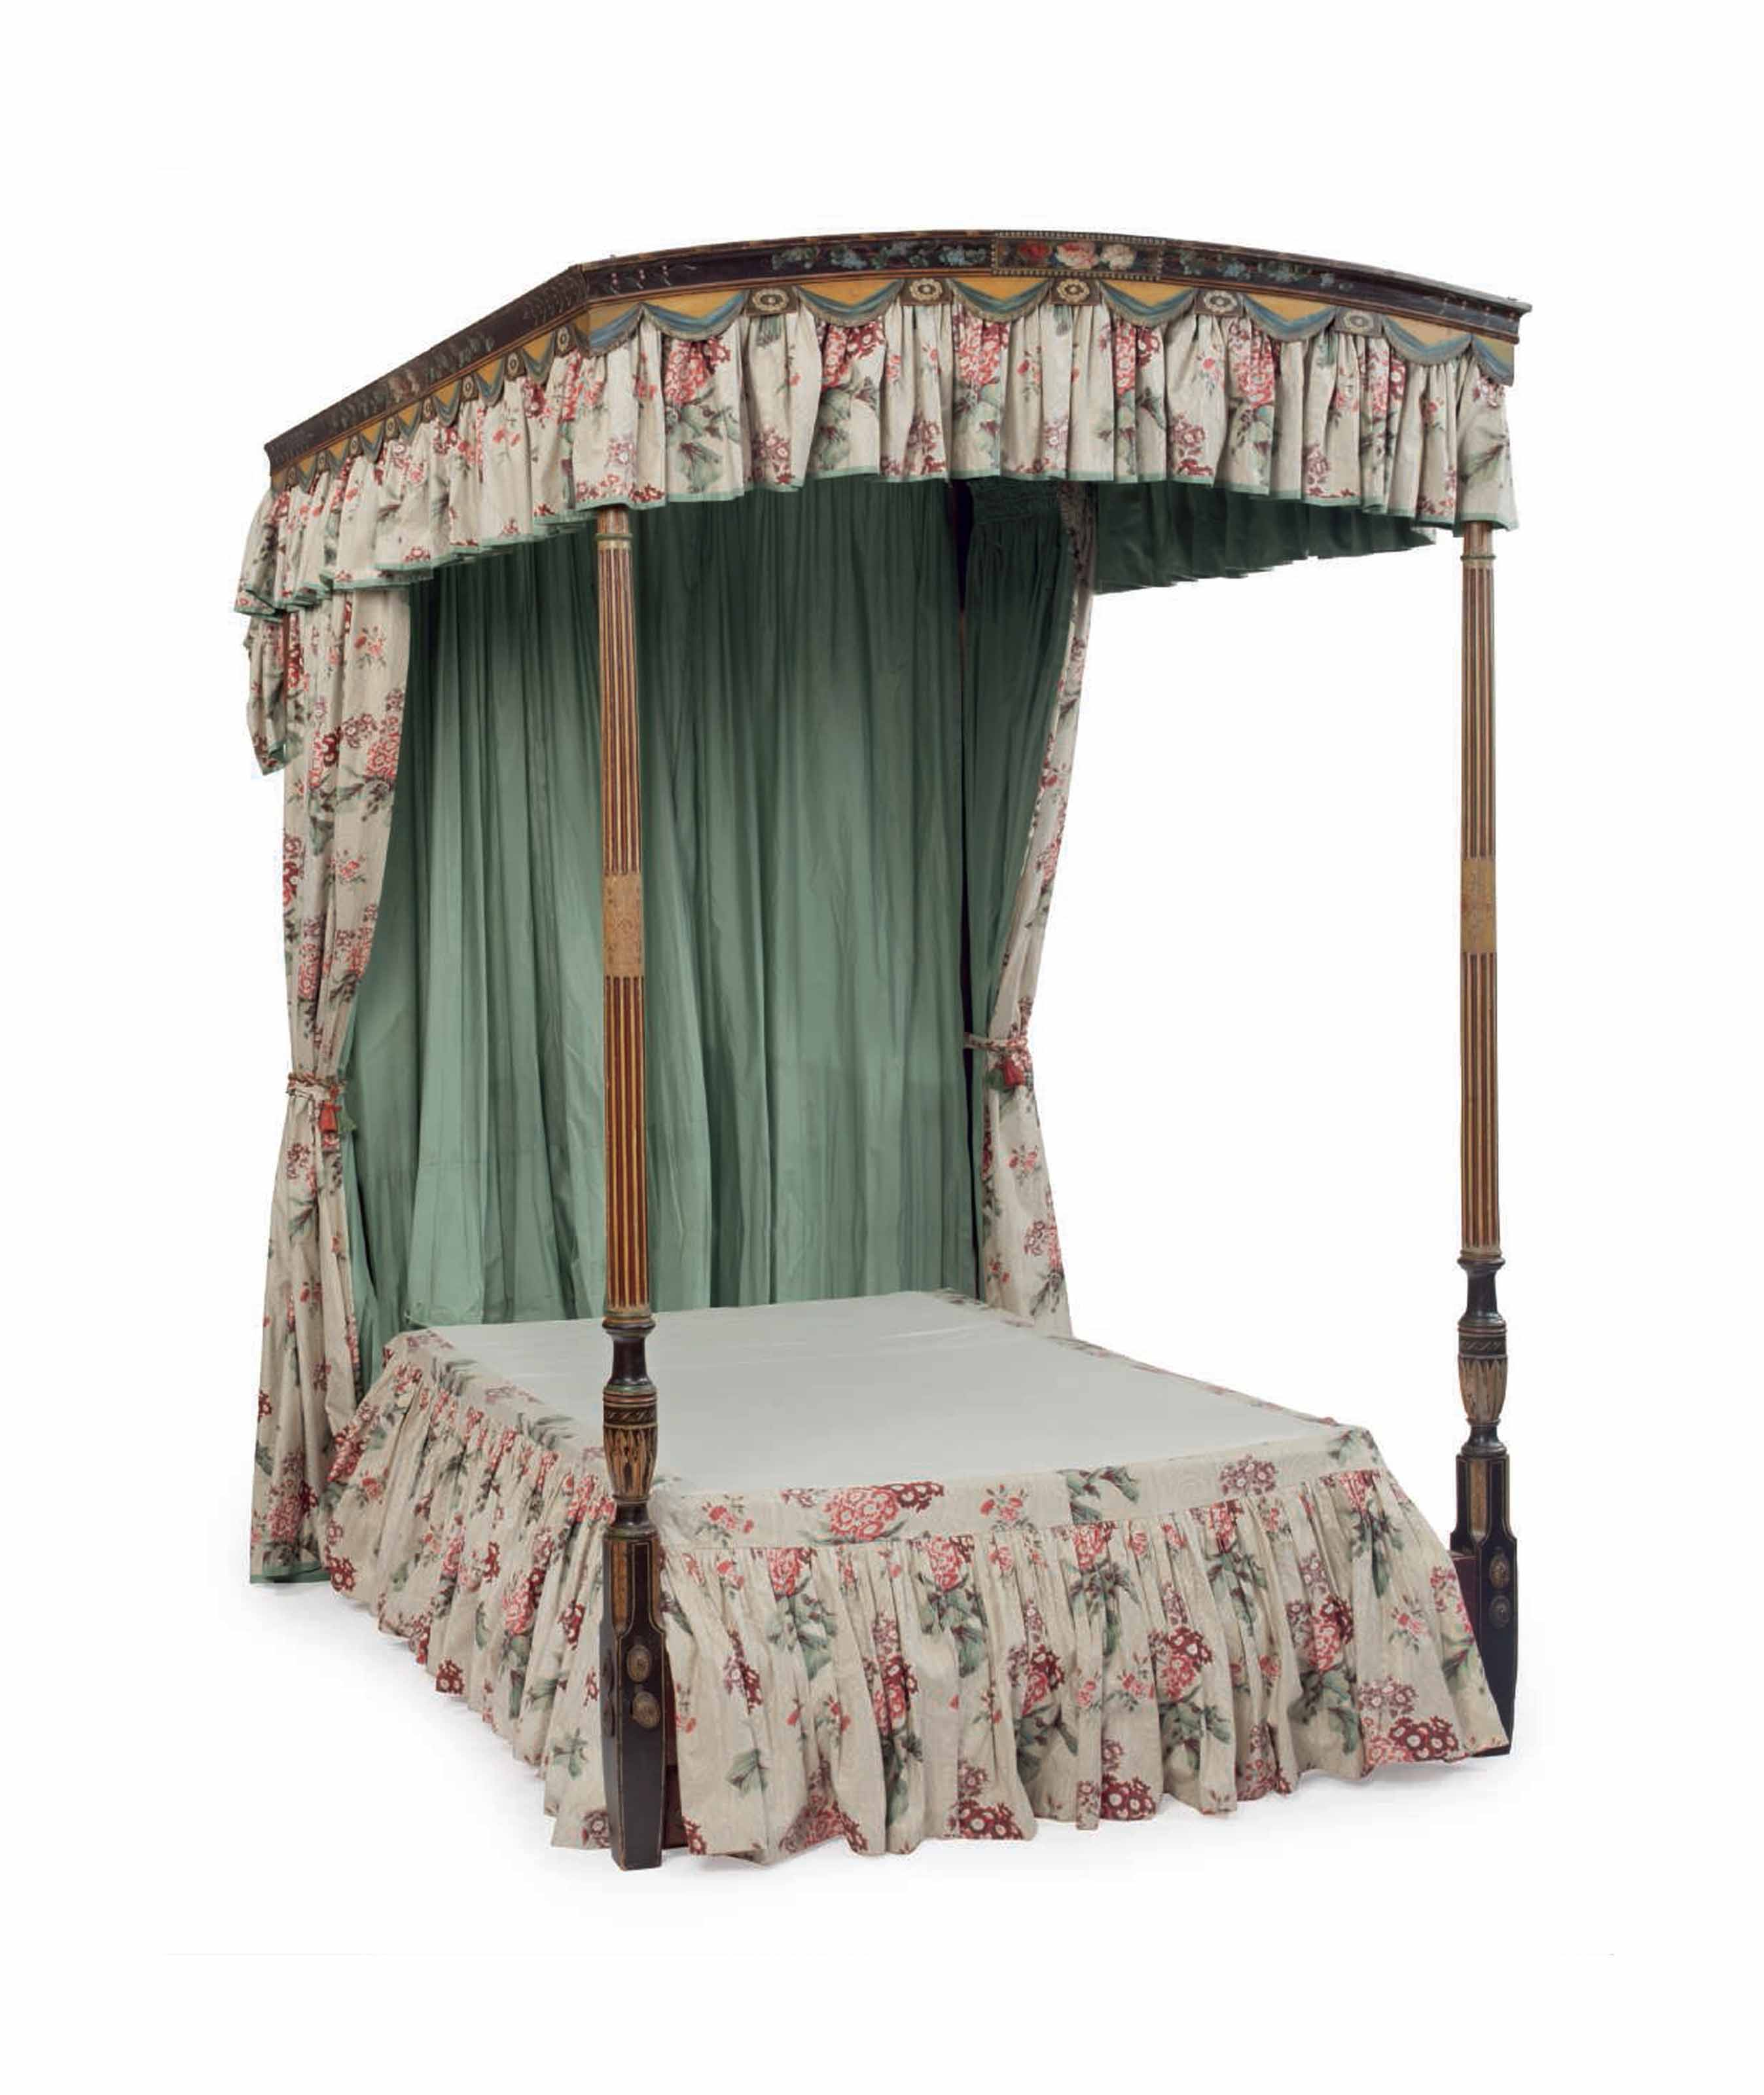 ideas four poster beds decorate talbot canopy bed best jen design